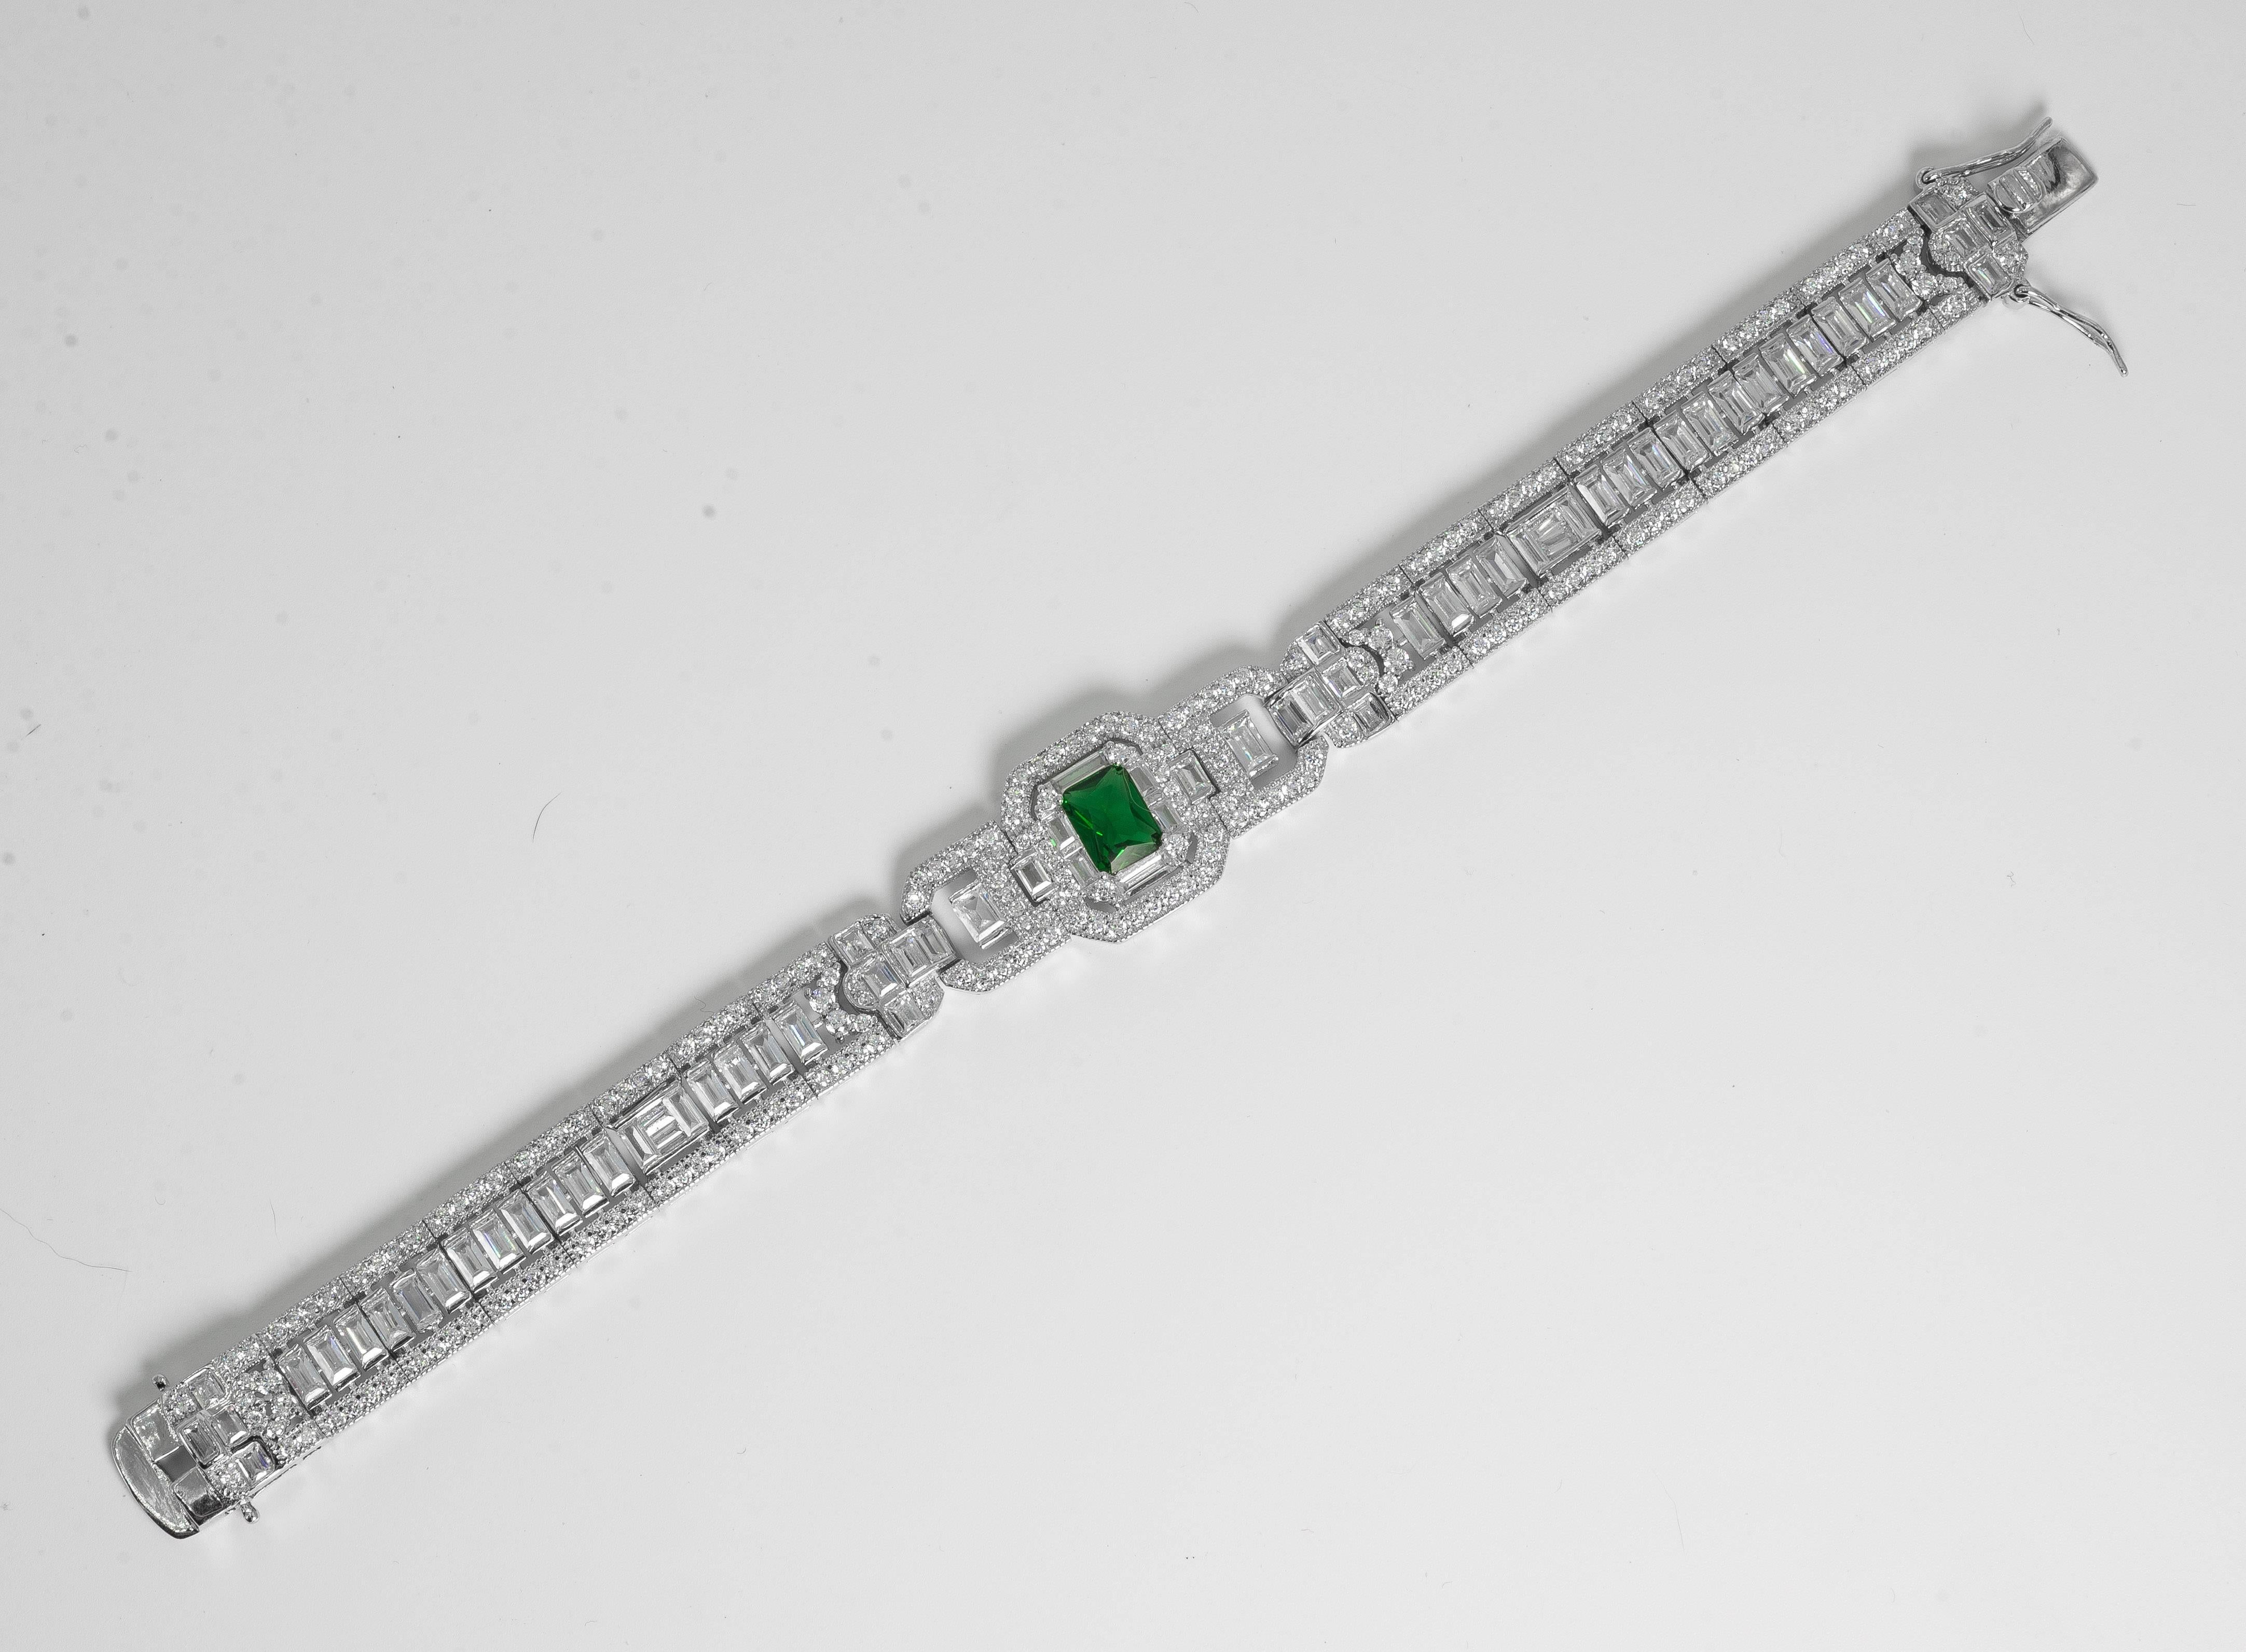 Magnificent Costume Jewelry Art Deco Style Diamond Emerald Bracelet In New Condition For Sale In New  sc 1 st  1stDibs & Magnificent Costume Jewelry Art Deco Style Diamond Emerald Bracelet ...